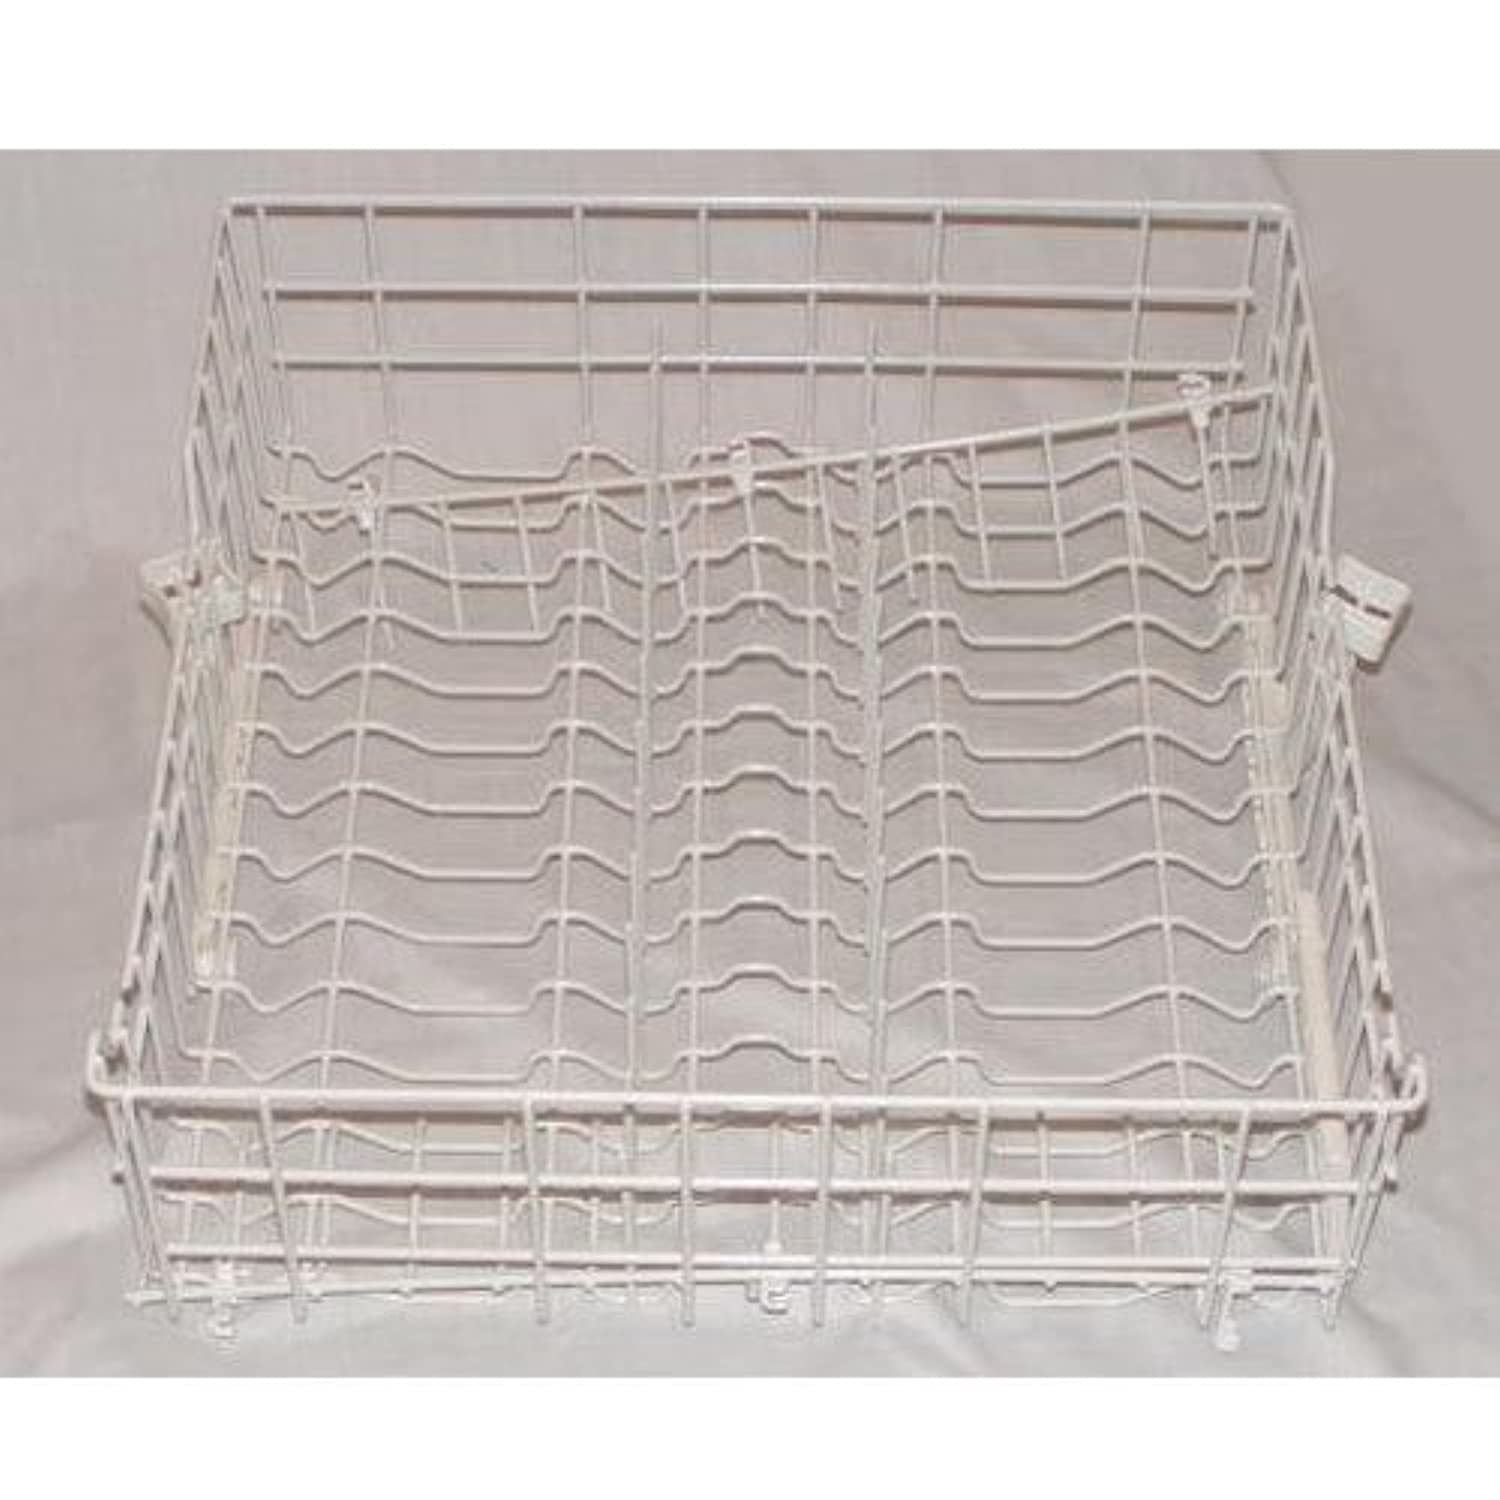 301421 - Jade Aftermarket Replacement Dishwasher Upper Rack qclzmr1186383